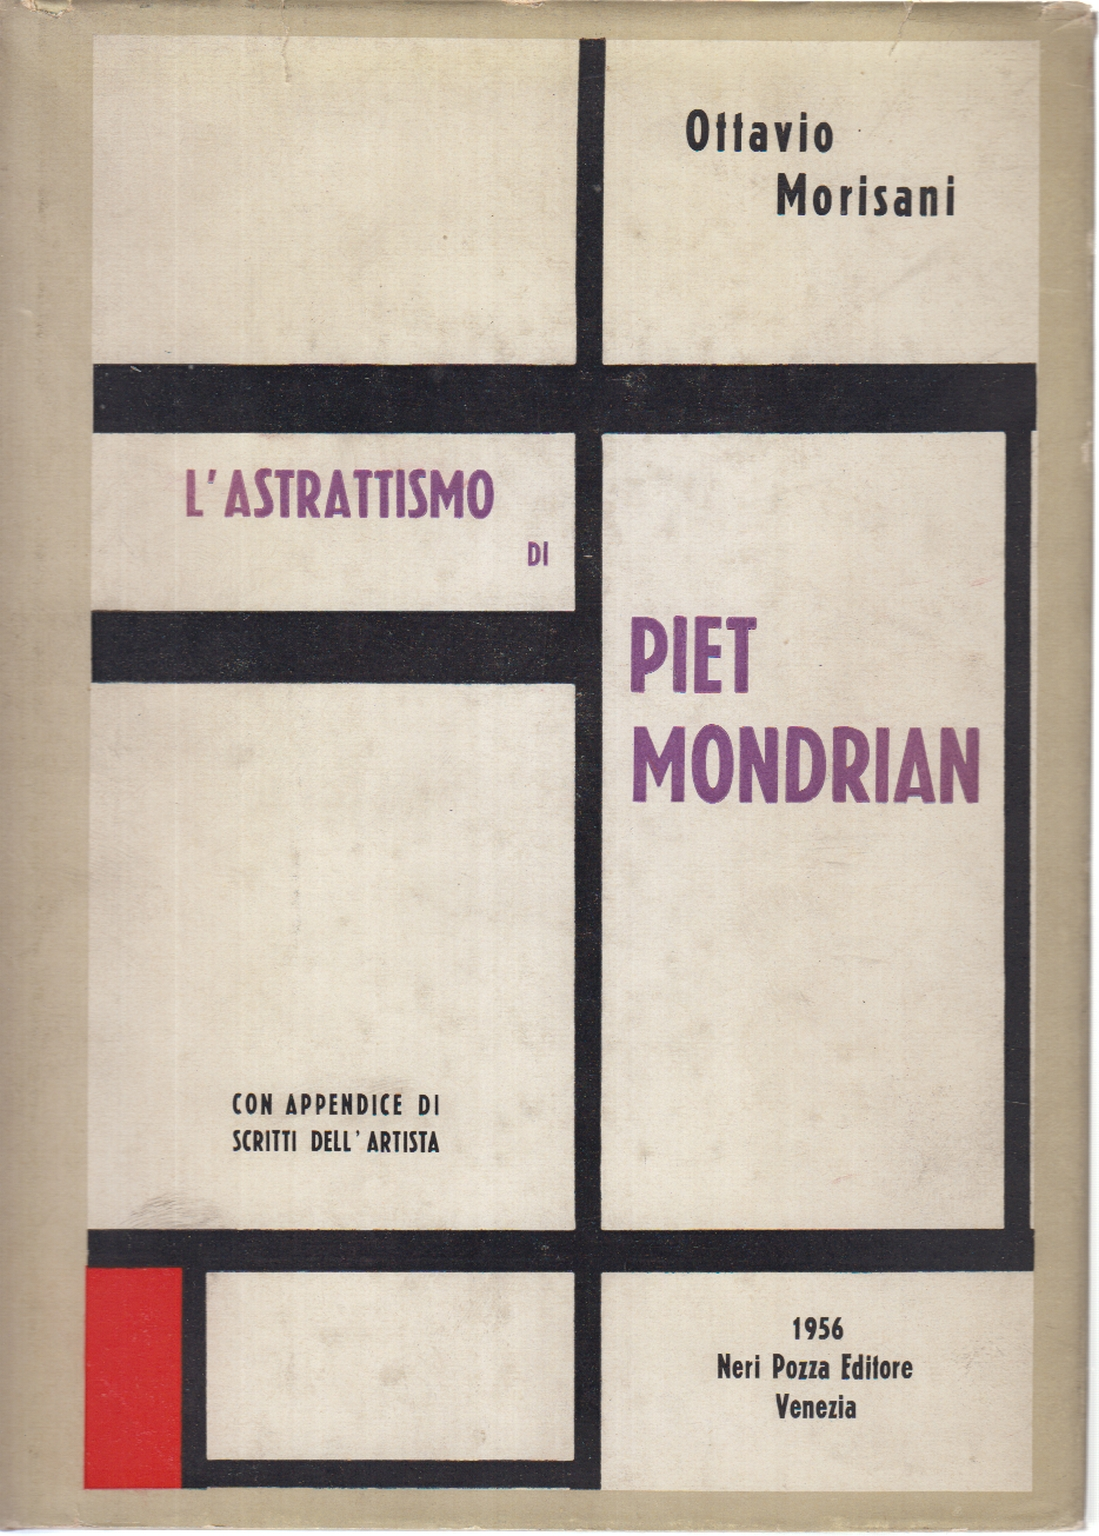 The abstractionism of Piet Mondrian, Ottavio Morisani